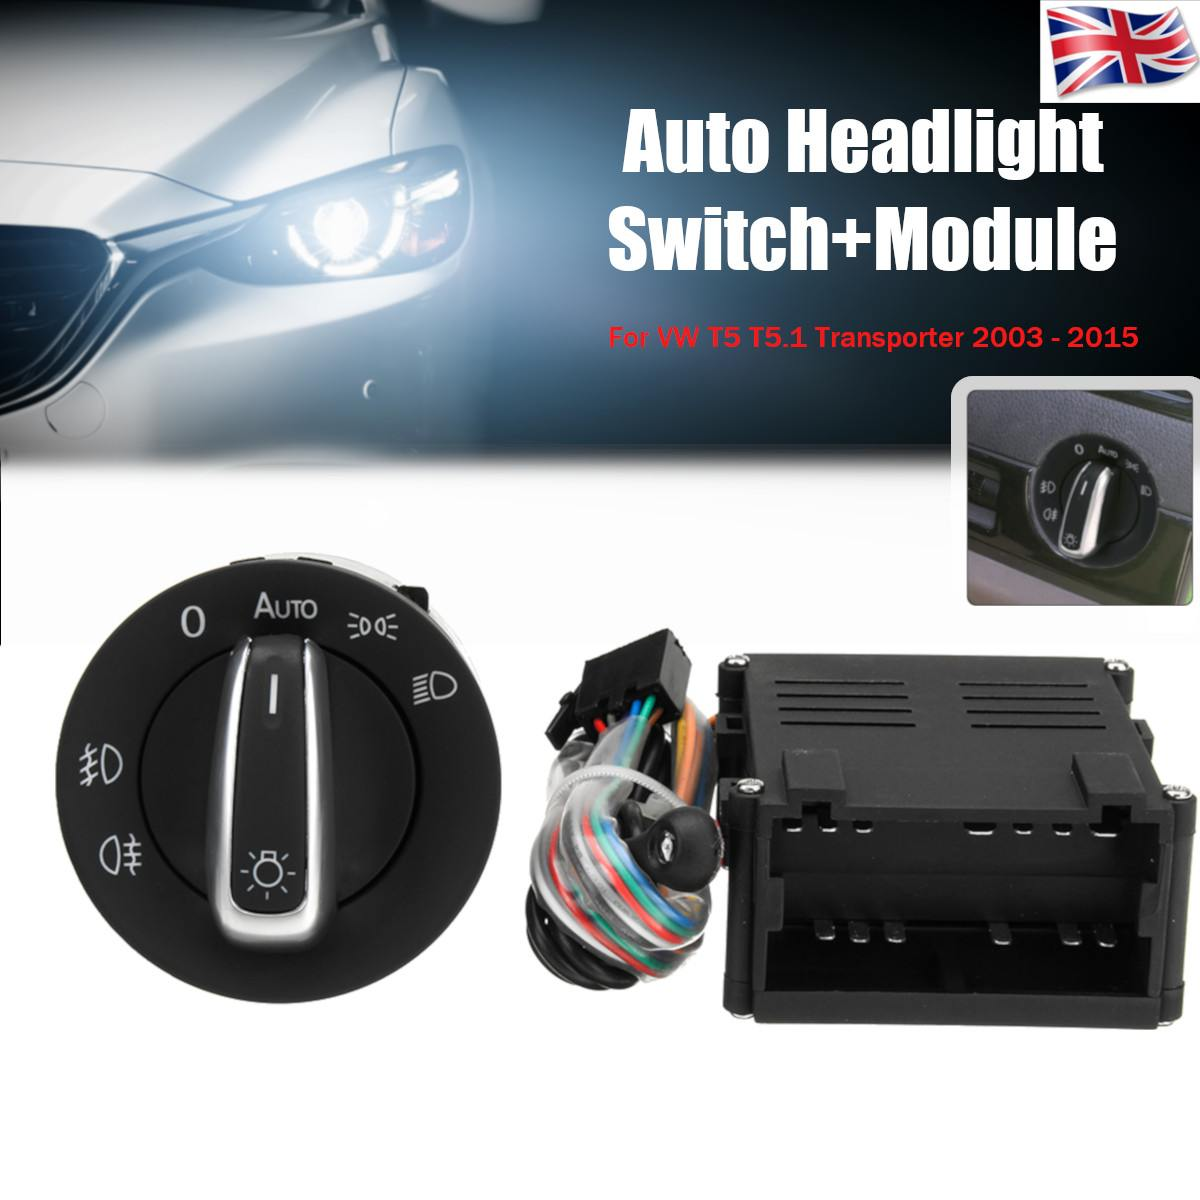 Car Auto Headlight Sensor HeadLamp Knob Switch Control Module for VW T5 T5.1 Transporter 2003 2015-in Car Switches & Relays from Automobiles & Motorcycles